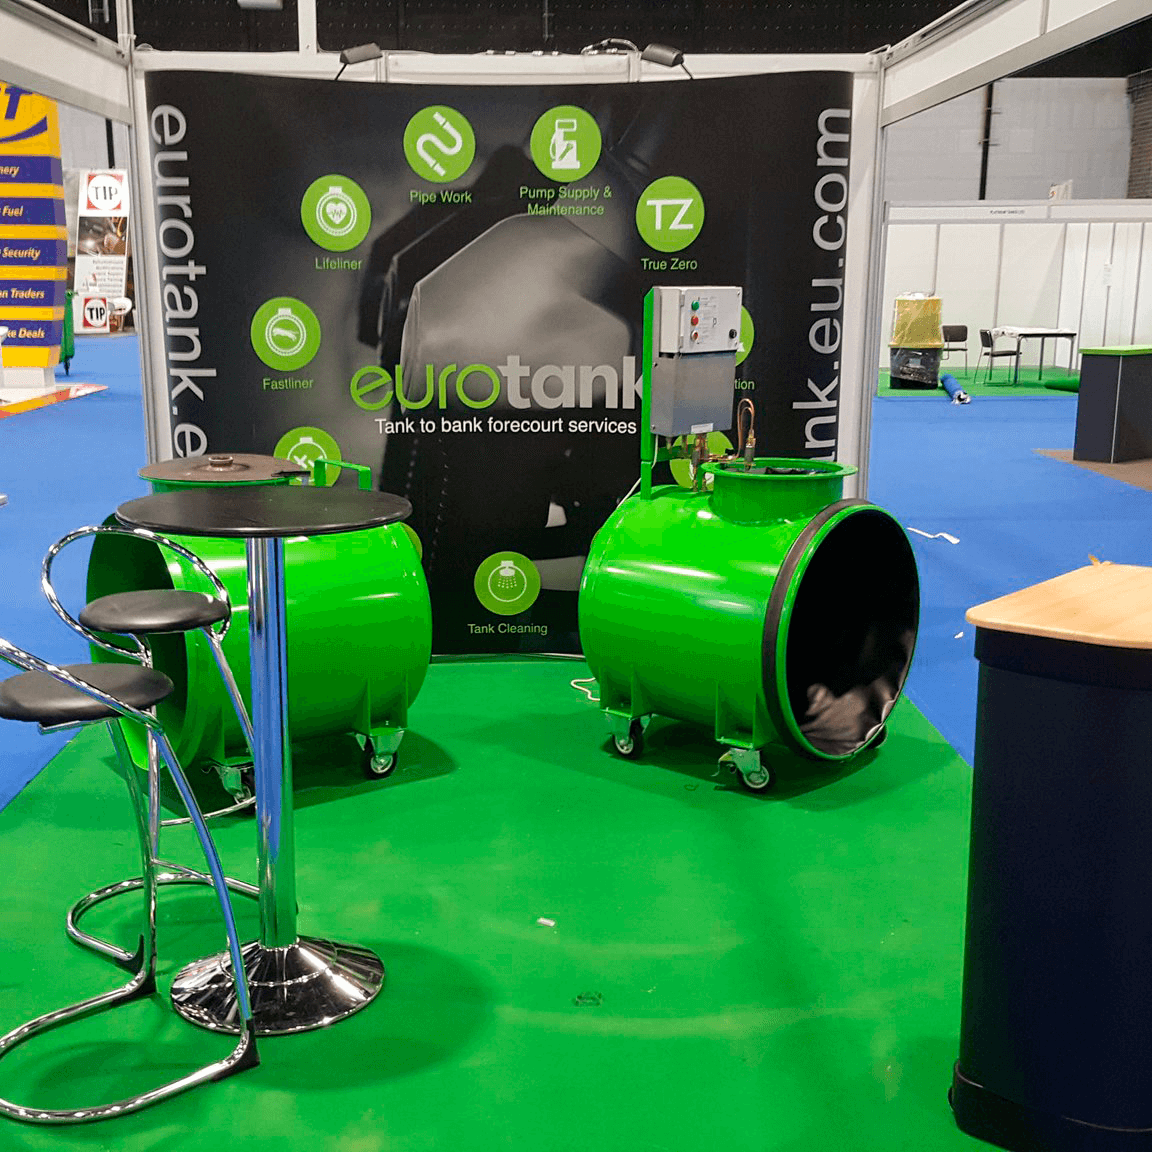 Eurotank Exhibition stand design